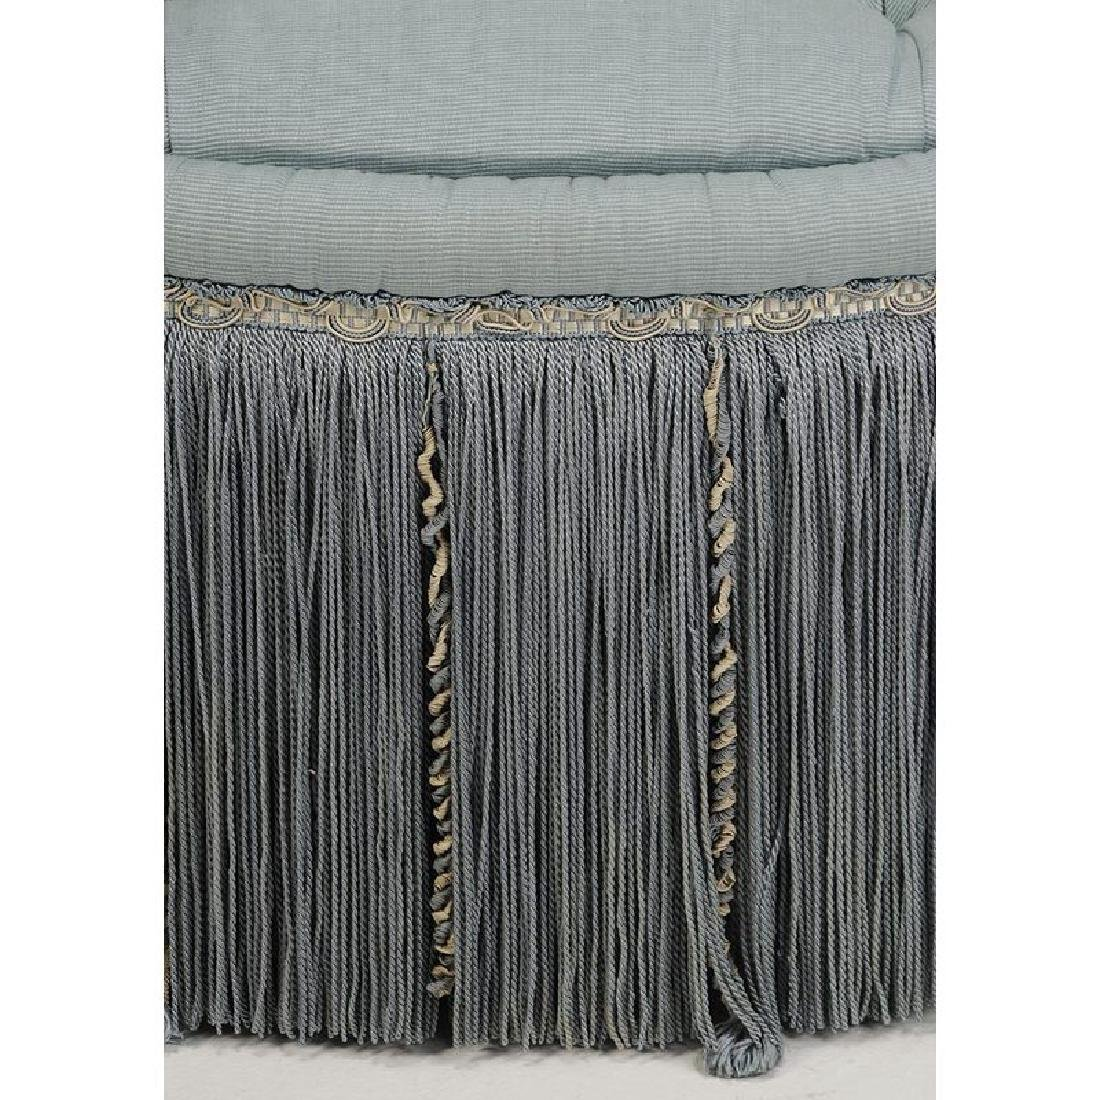 Tufted Upholstered and Tassel Decorated Ottoman - 3